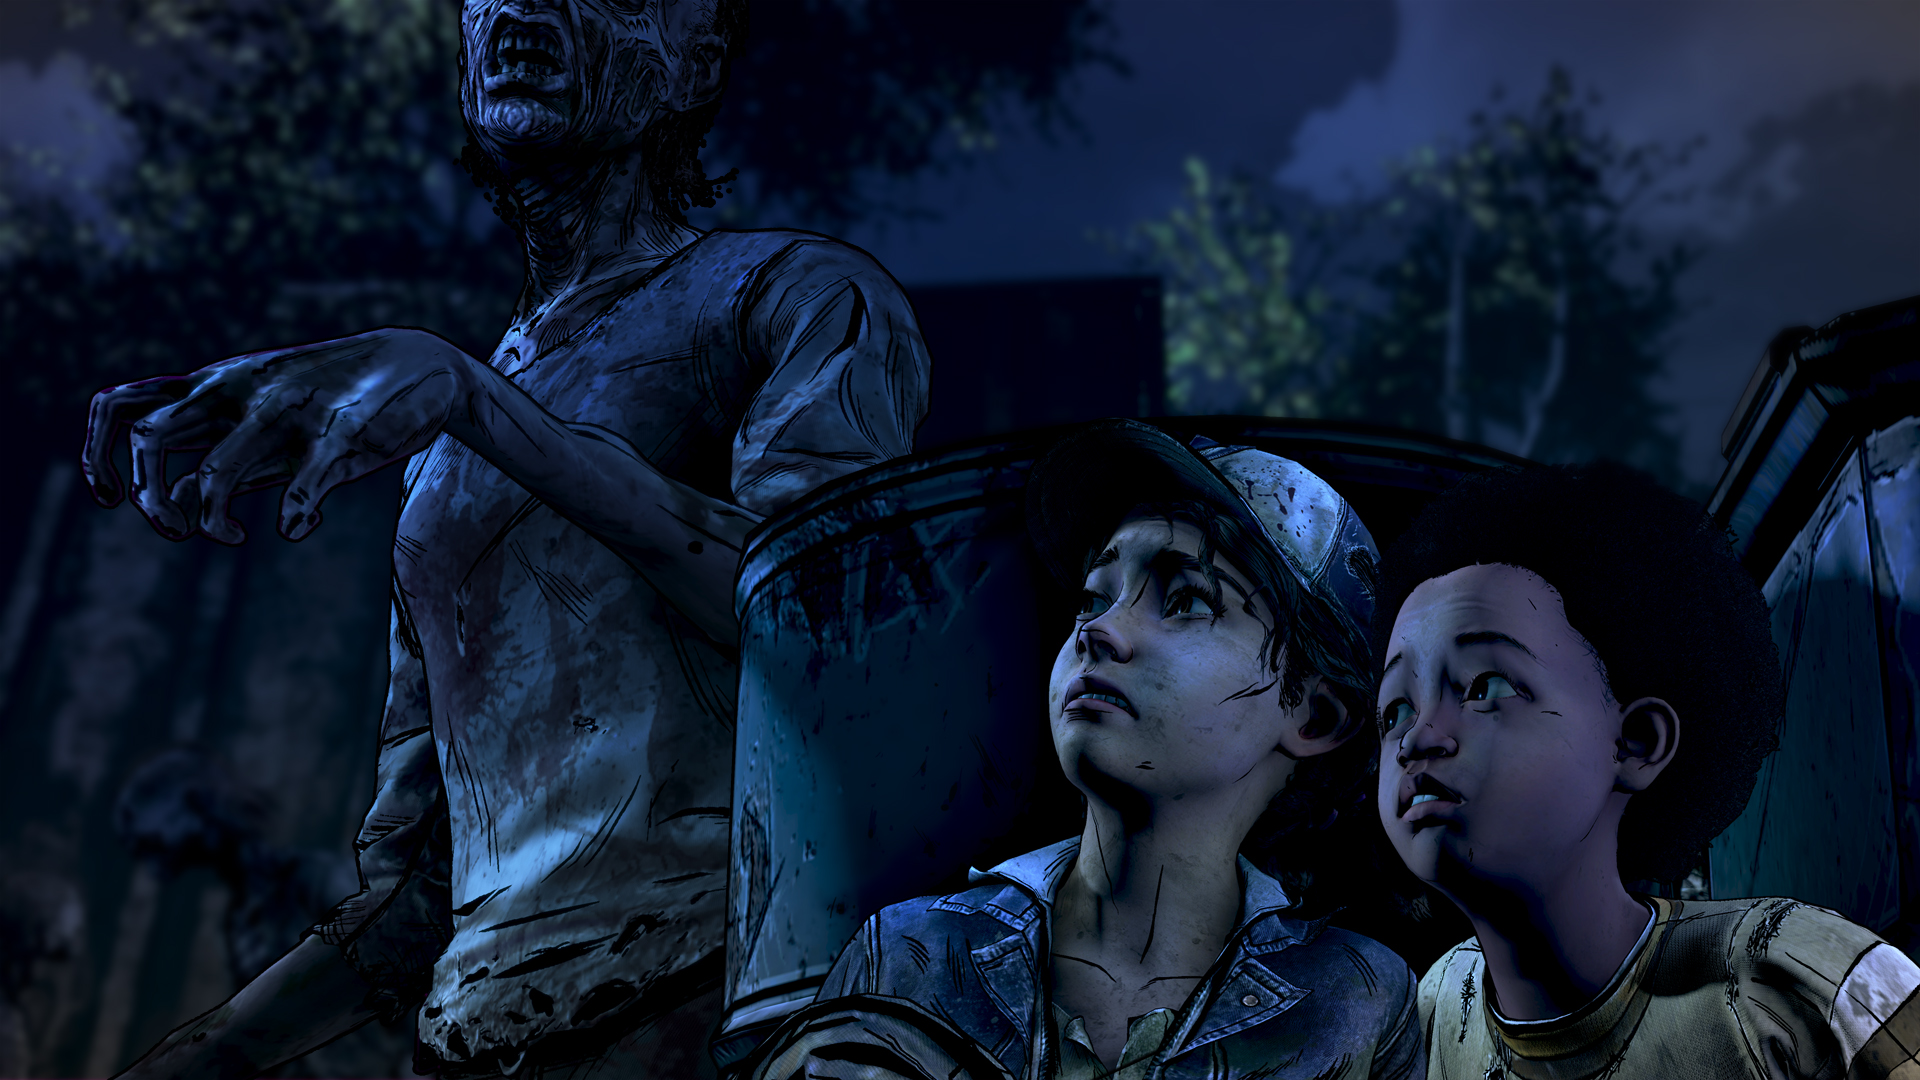 Telltale Is Reportedly Lo Ng For Another Developer To Hire Some Of Its Former Staff And Continue Working On The Two Remaining Episodes In The Walking